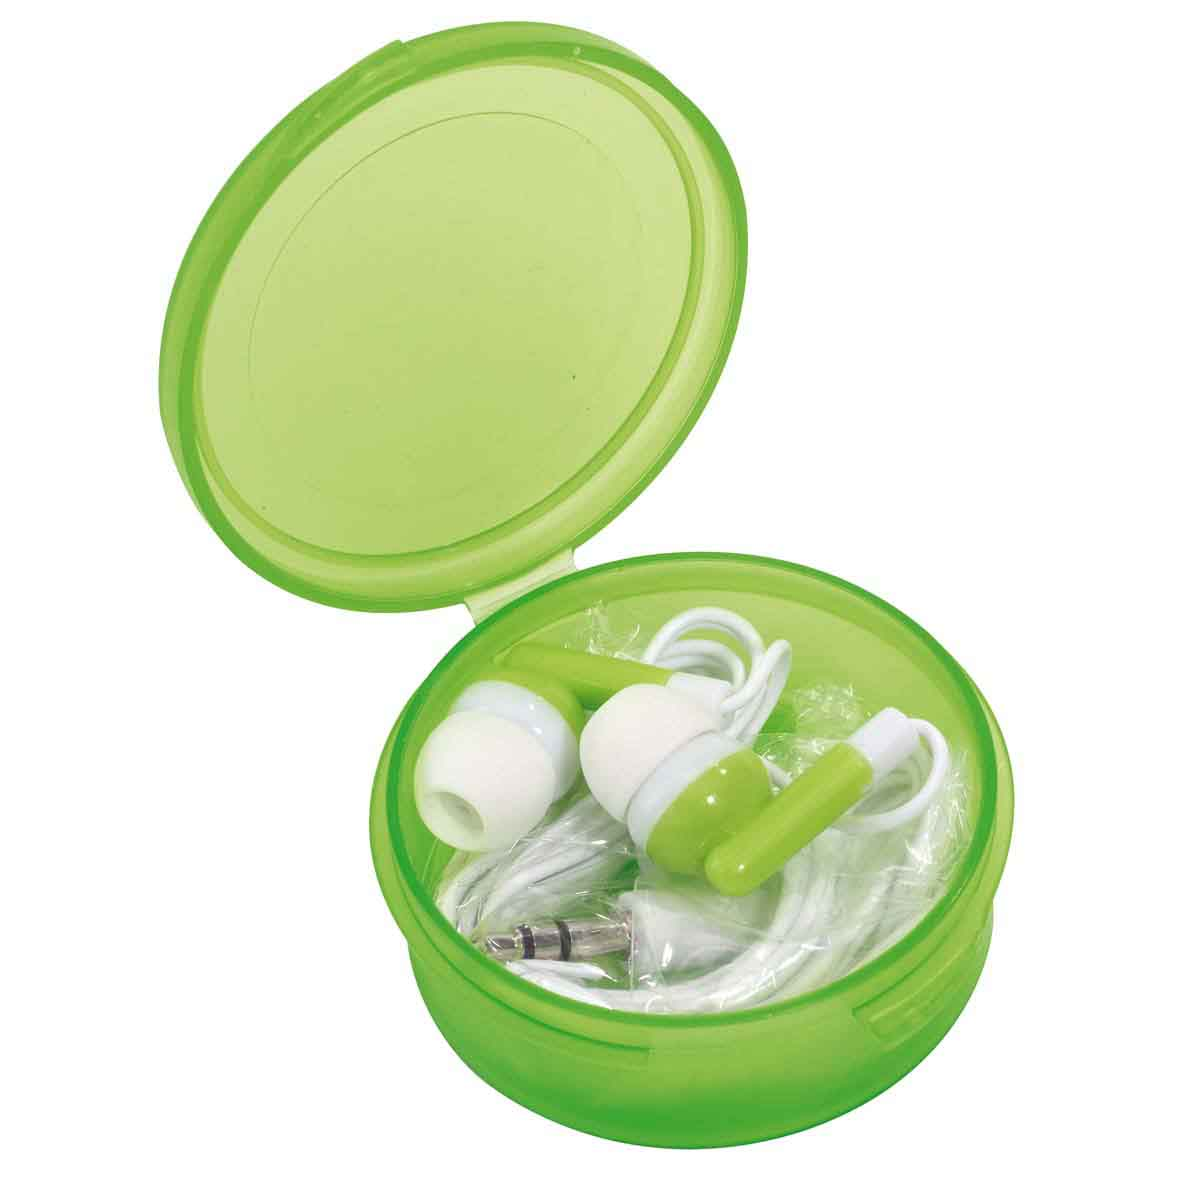 In-ear headphones 'Music': 3.5 mm jack plug, cable length approx. 117 cm, in colour matching storage box. - Green ins-0406238